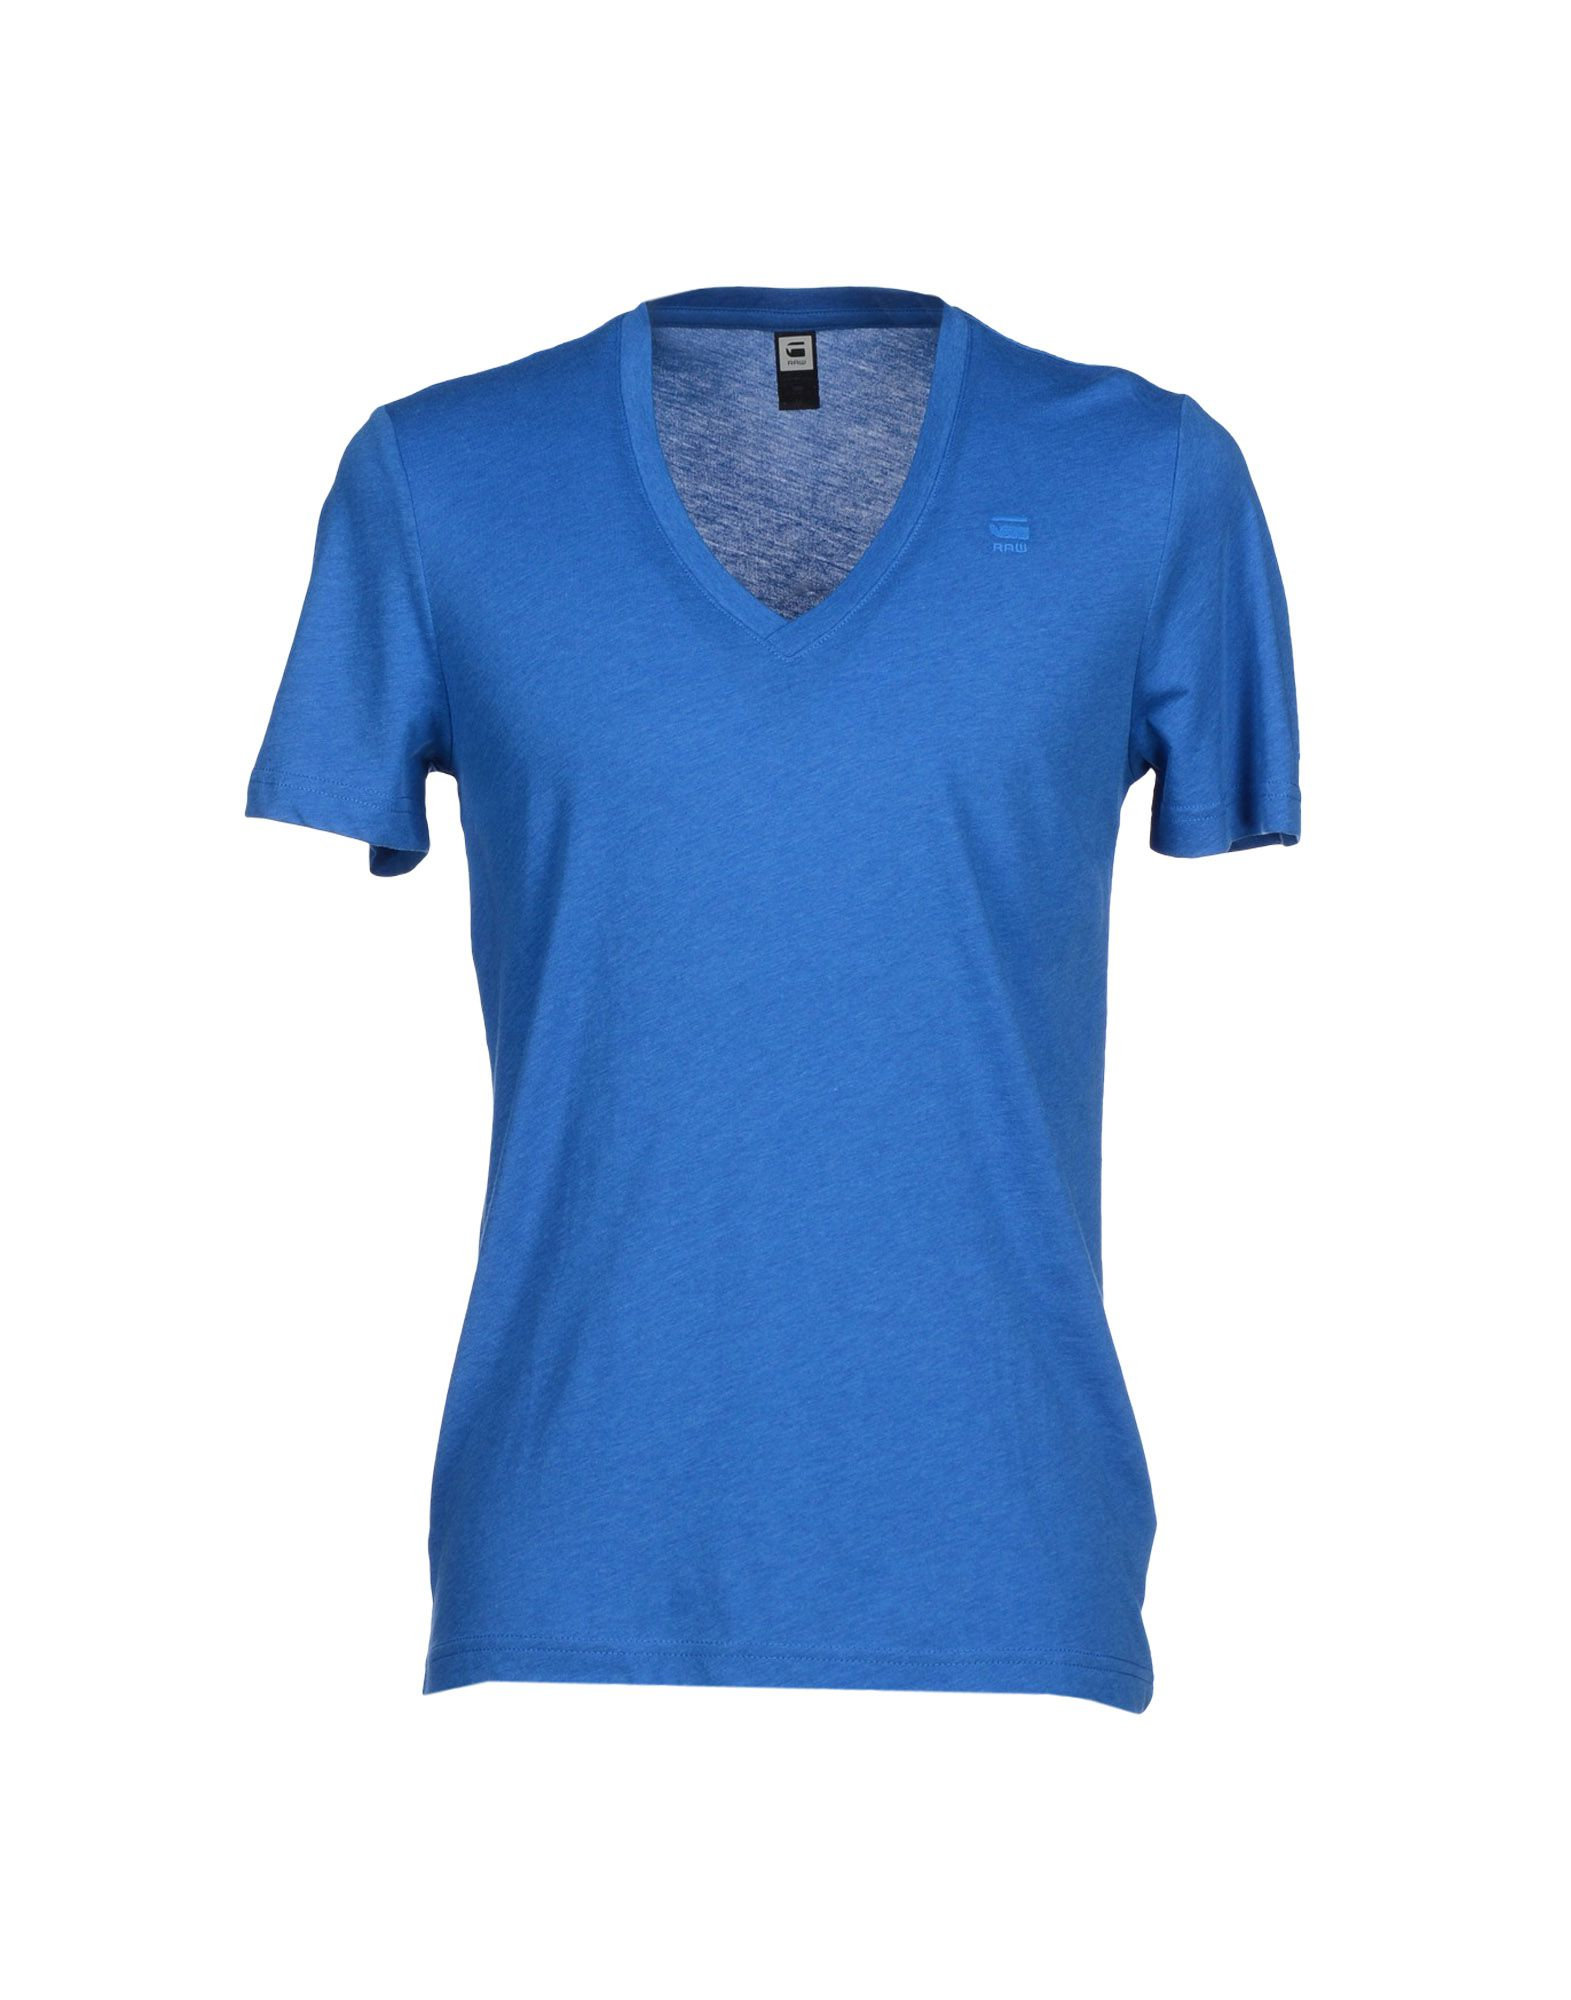 g star raw t shirt in blue for men lyst. Black Bedroom Furniture Sets. Home Design Ideas